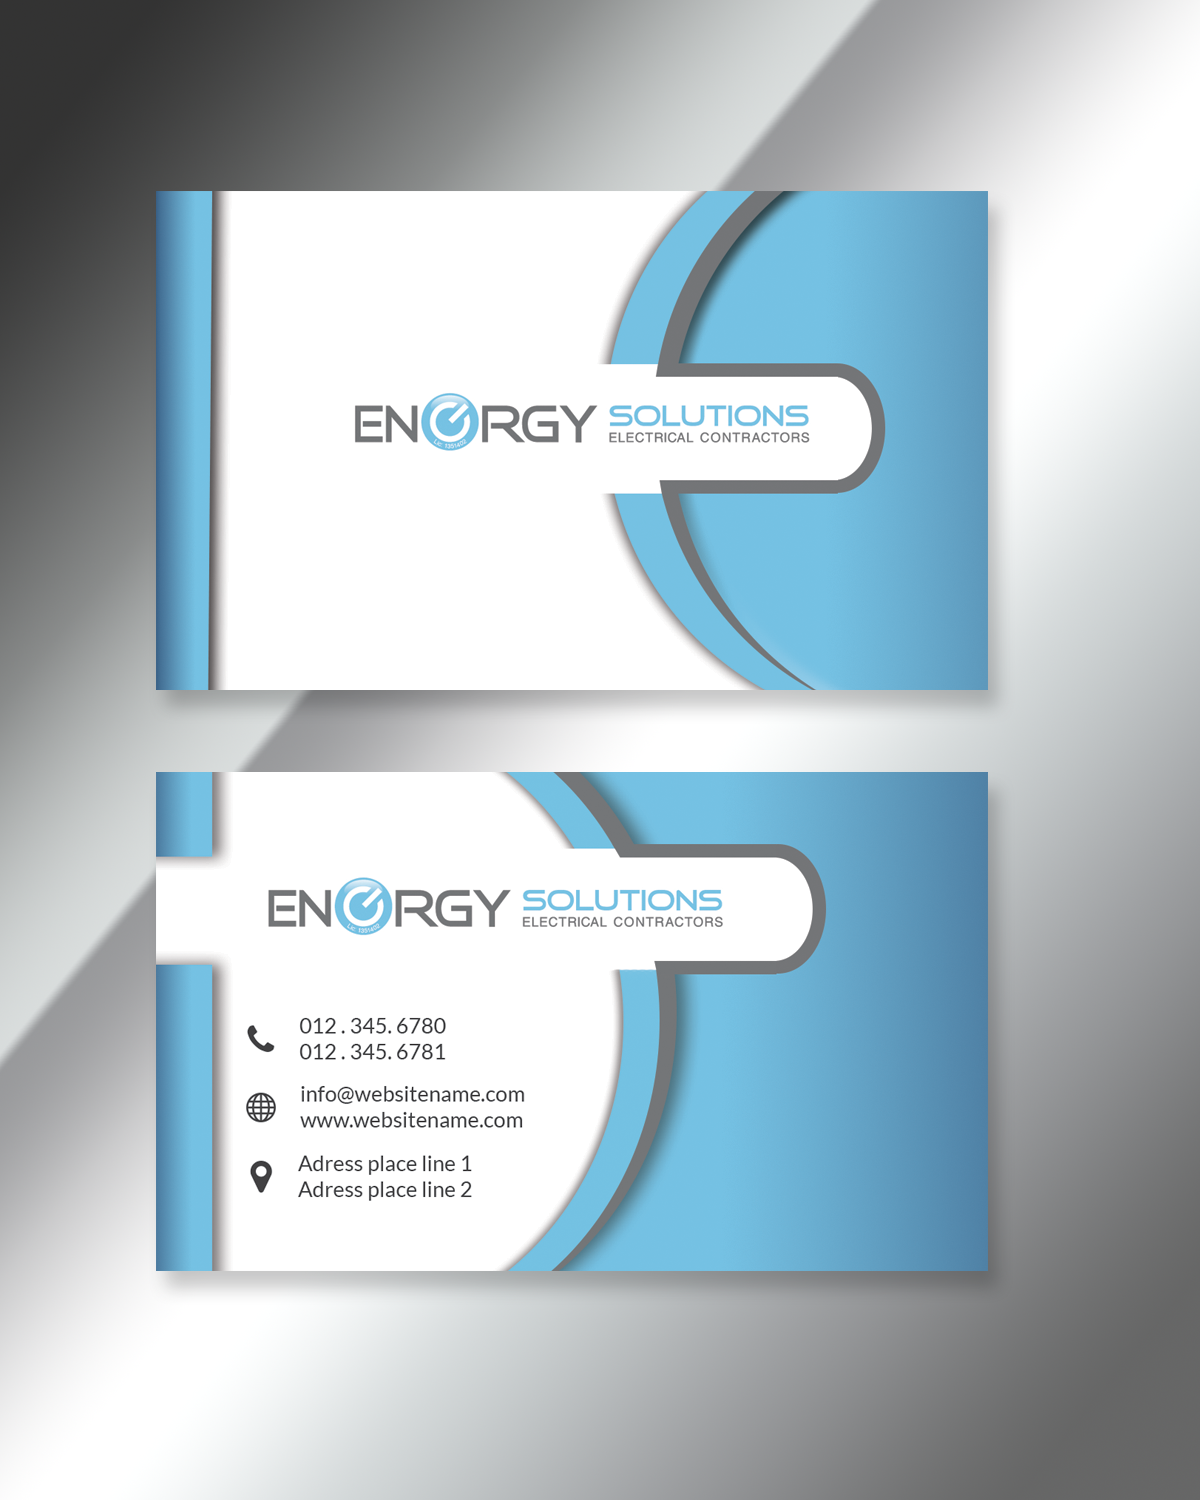 Elegant playful business business card design for energy solutions business card design by nelledj for energy solutions electrical design 7725299 colourmoves